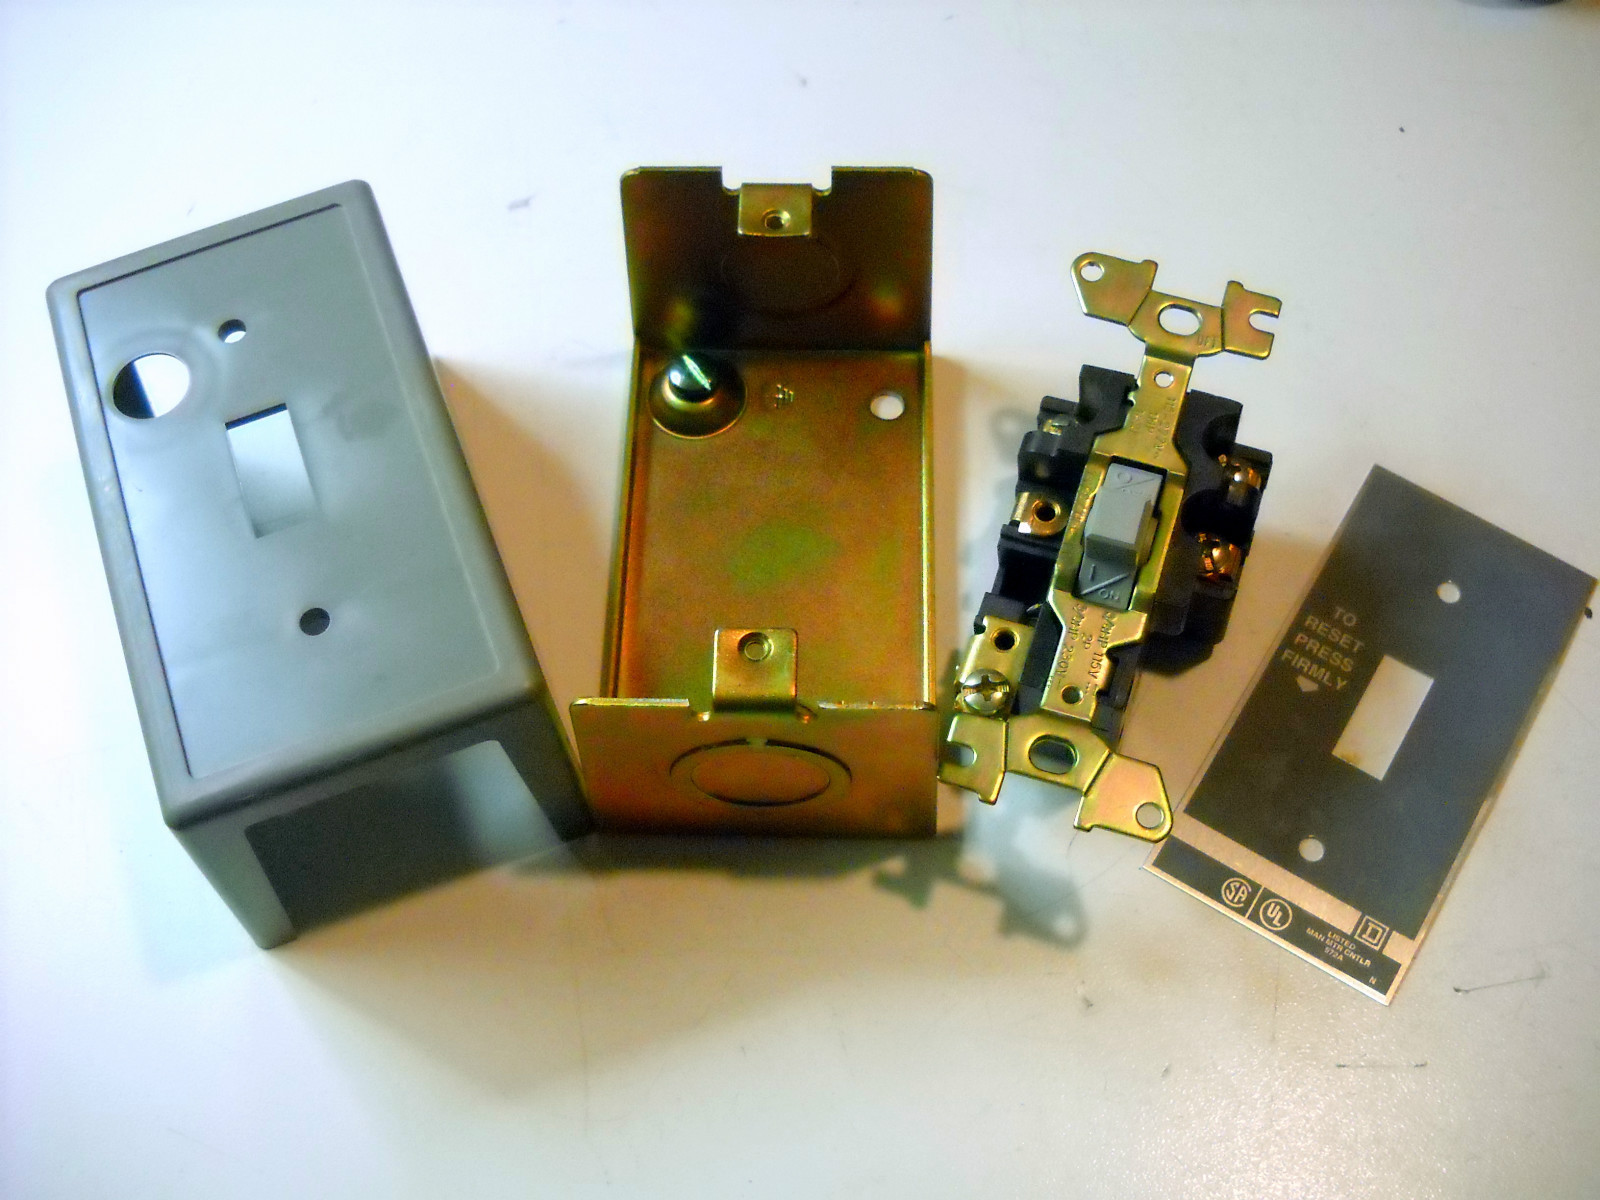 square d rocker switch square database wiring diagram images new square d 2510 fg2 manual starter toggle switch nema 1